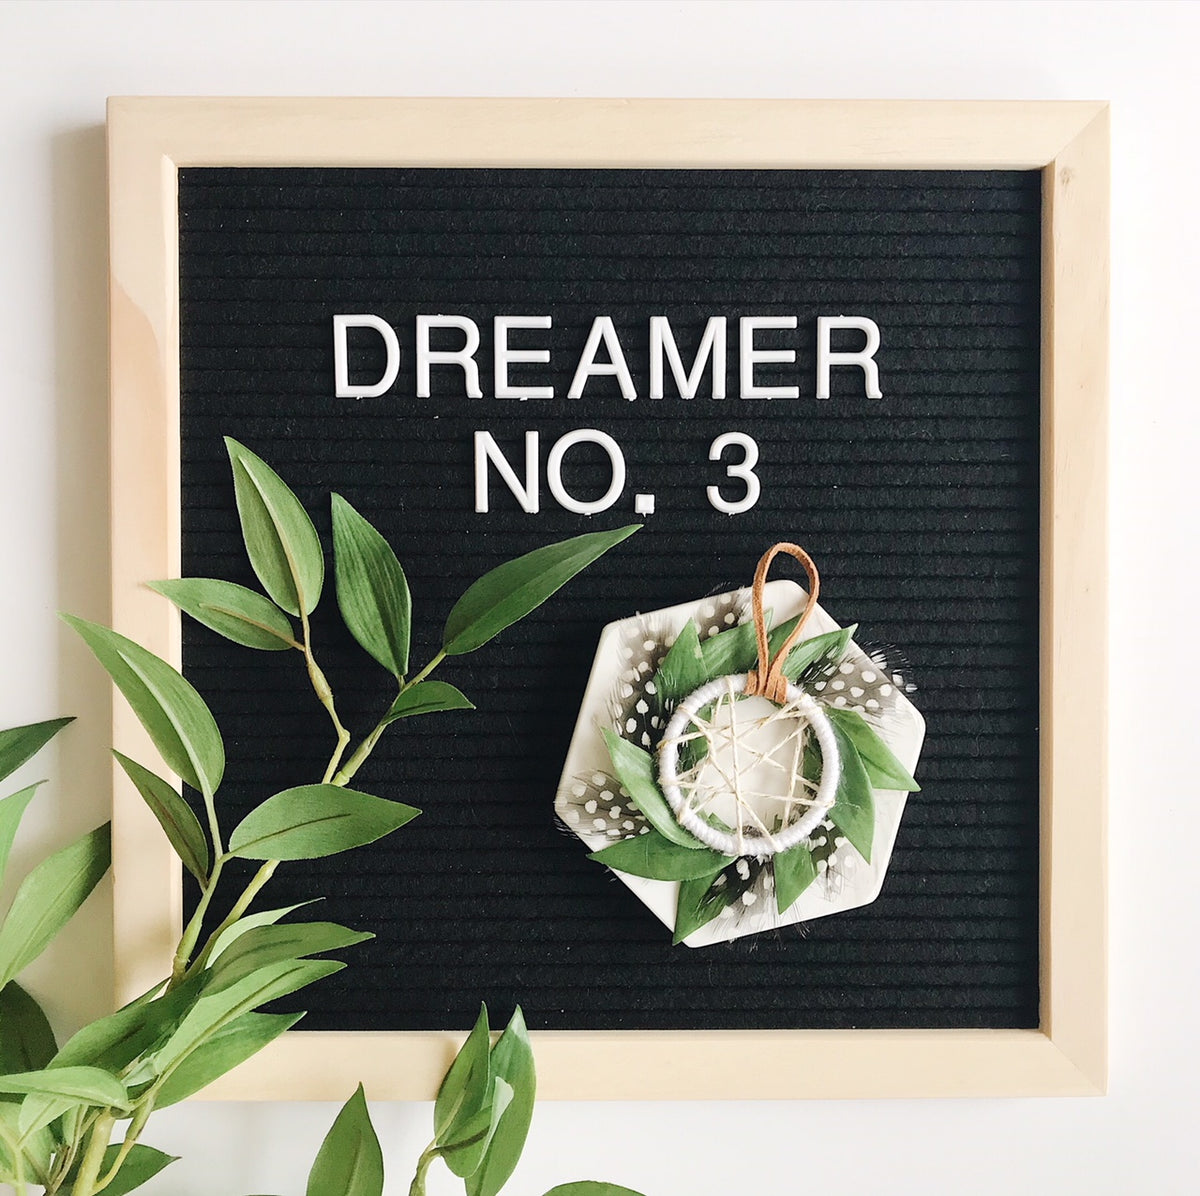 Dreamer No. 3 | 100 Days of Dreamers